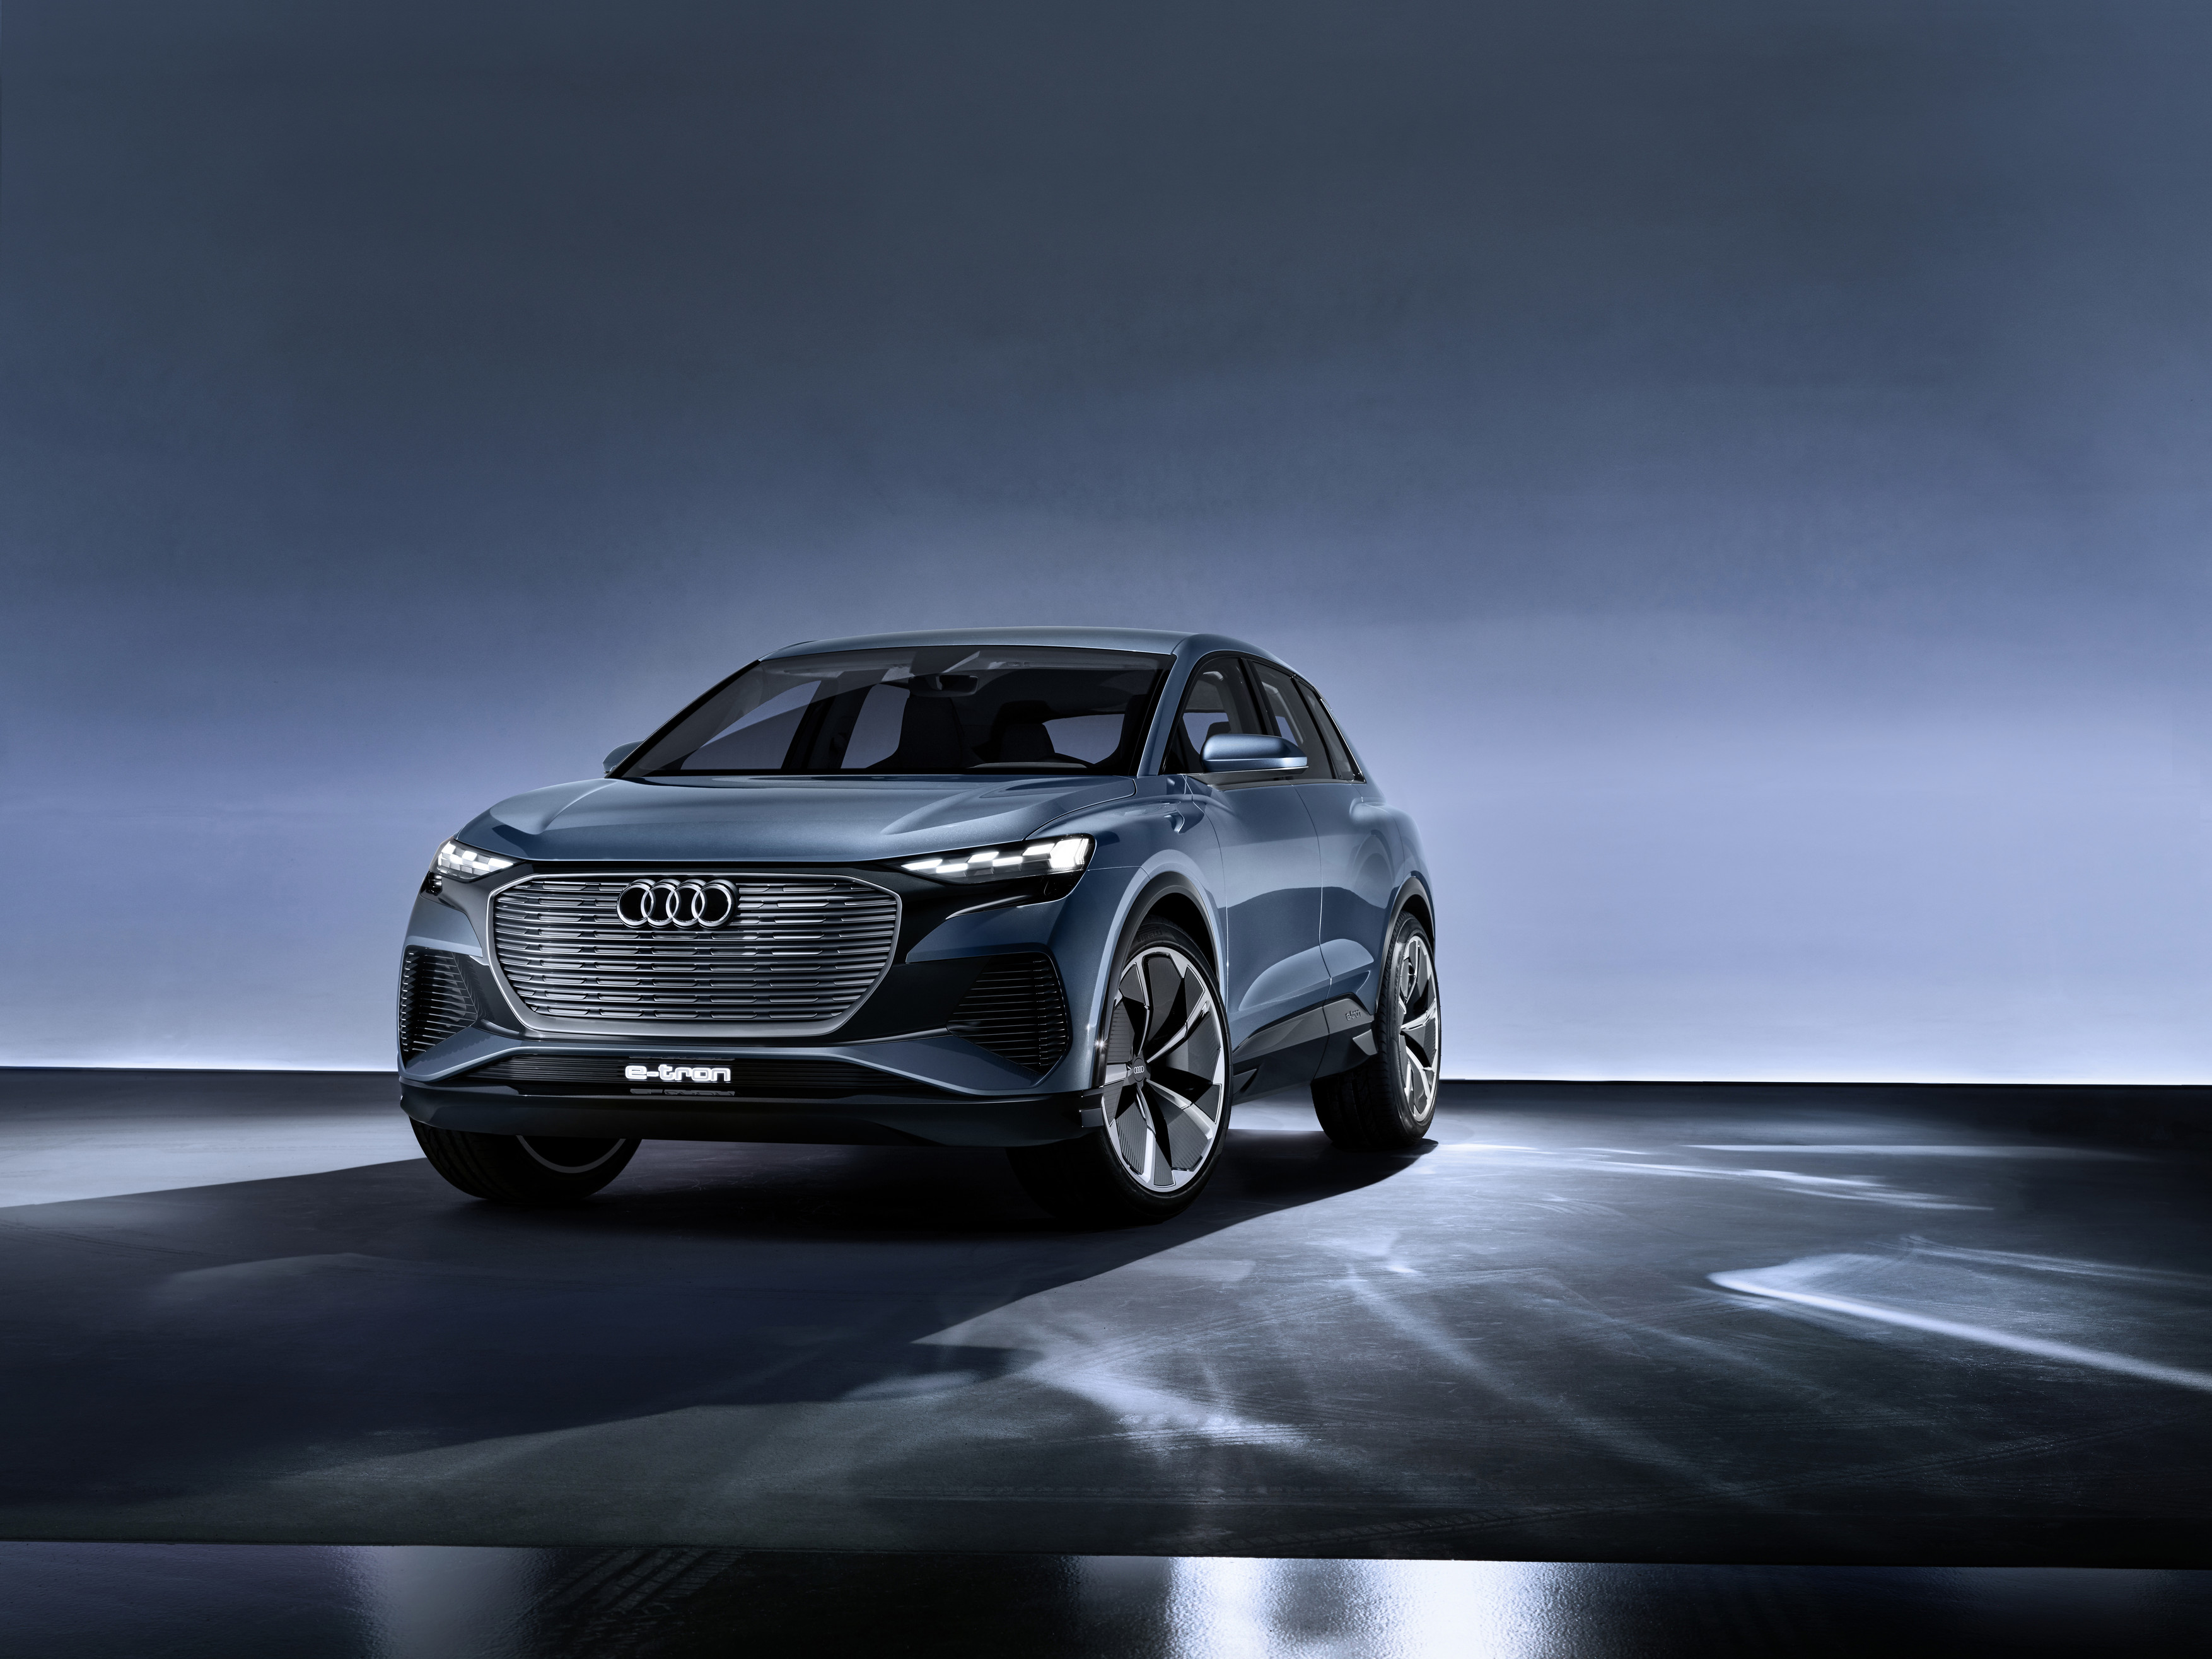 audi q4 etron concept aims to practical with four doors. Black Bedroom Furniture Sets. Home Design Ideas